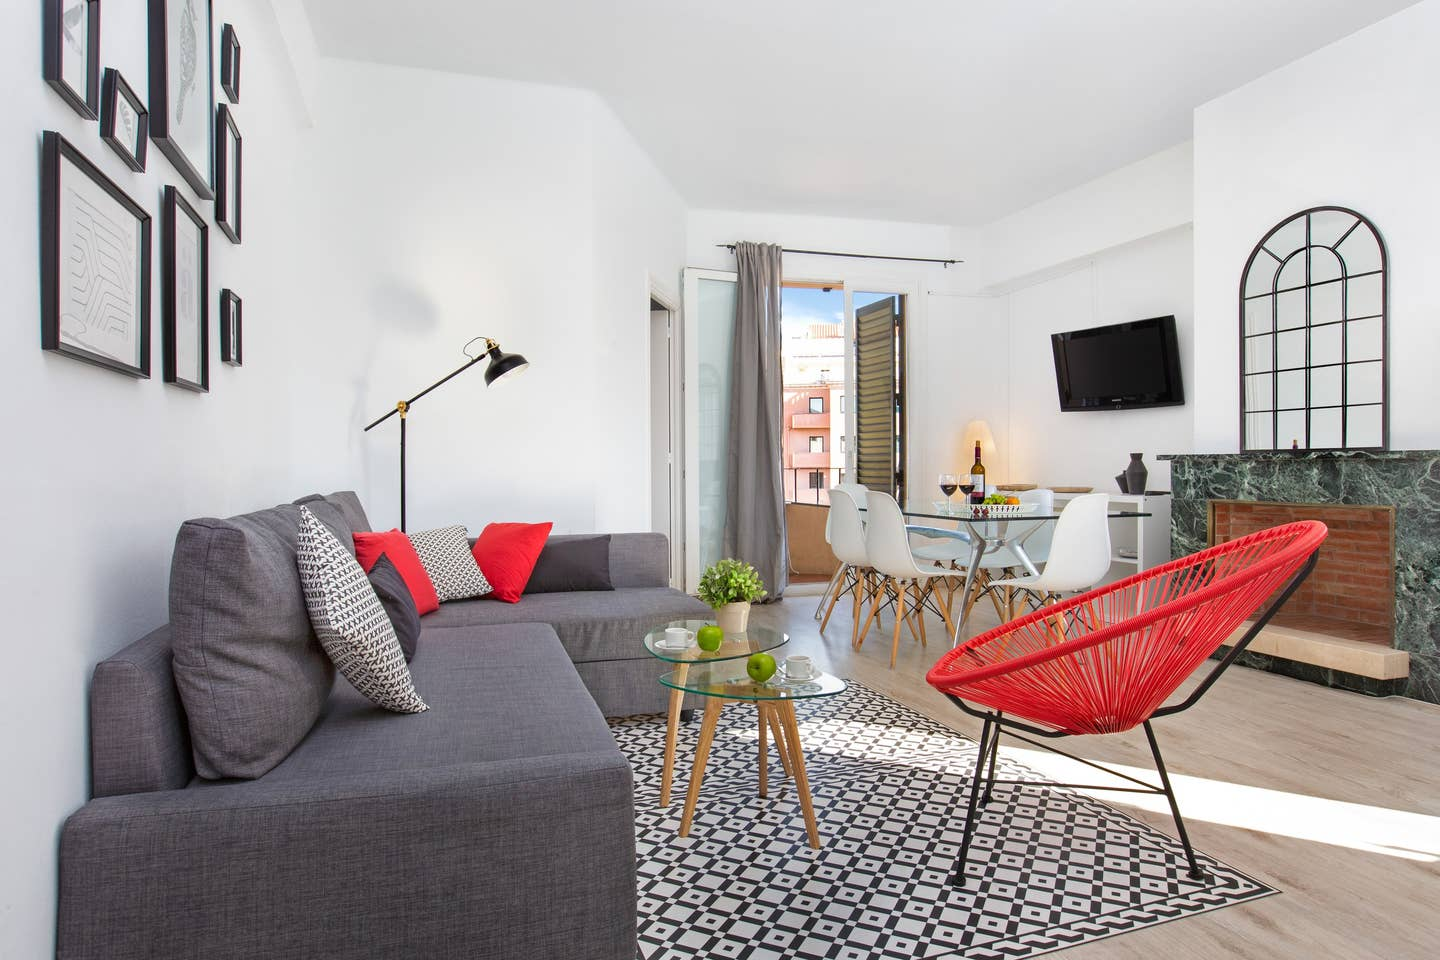 Airbnb aparment photos colour accents